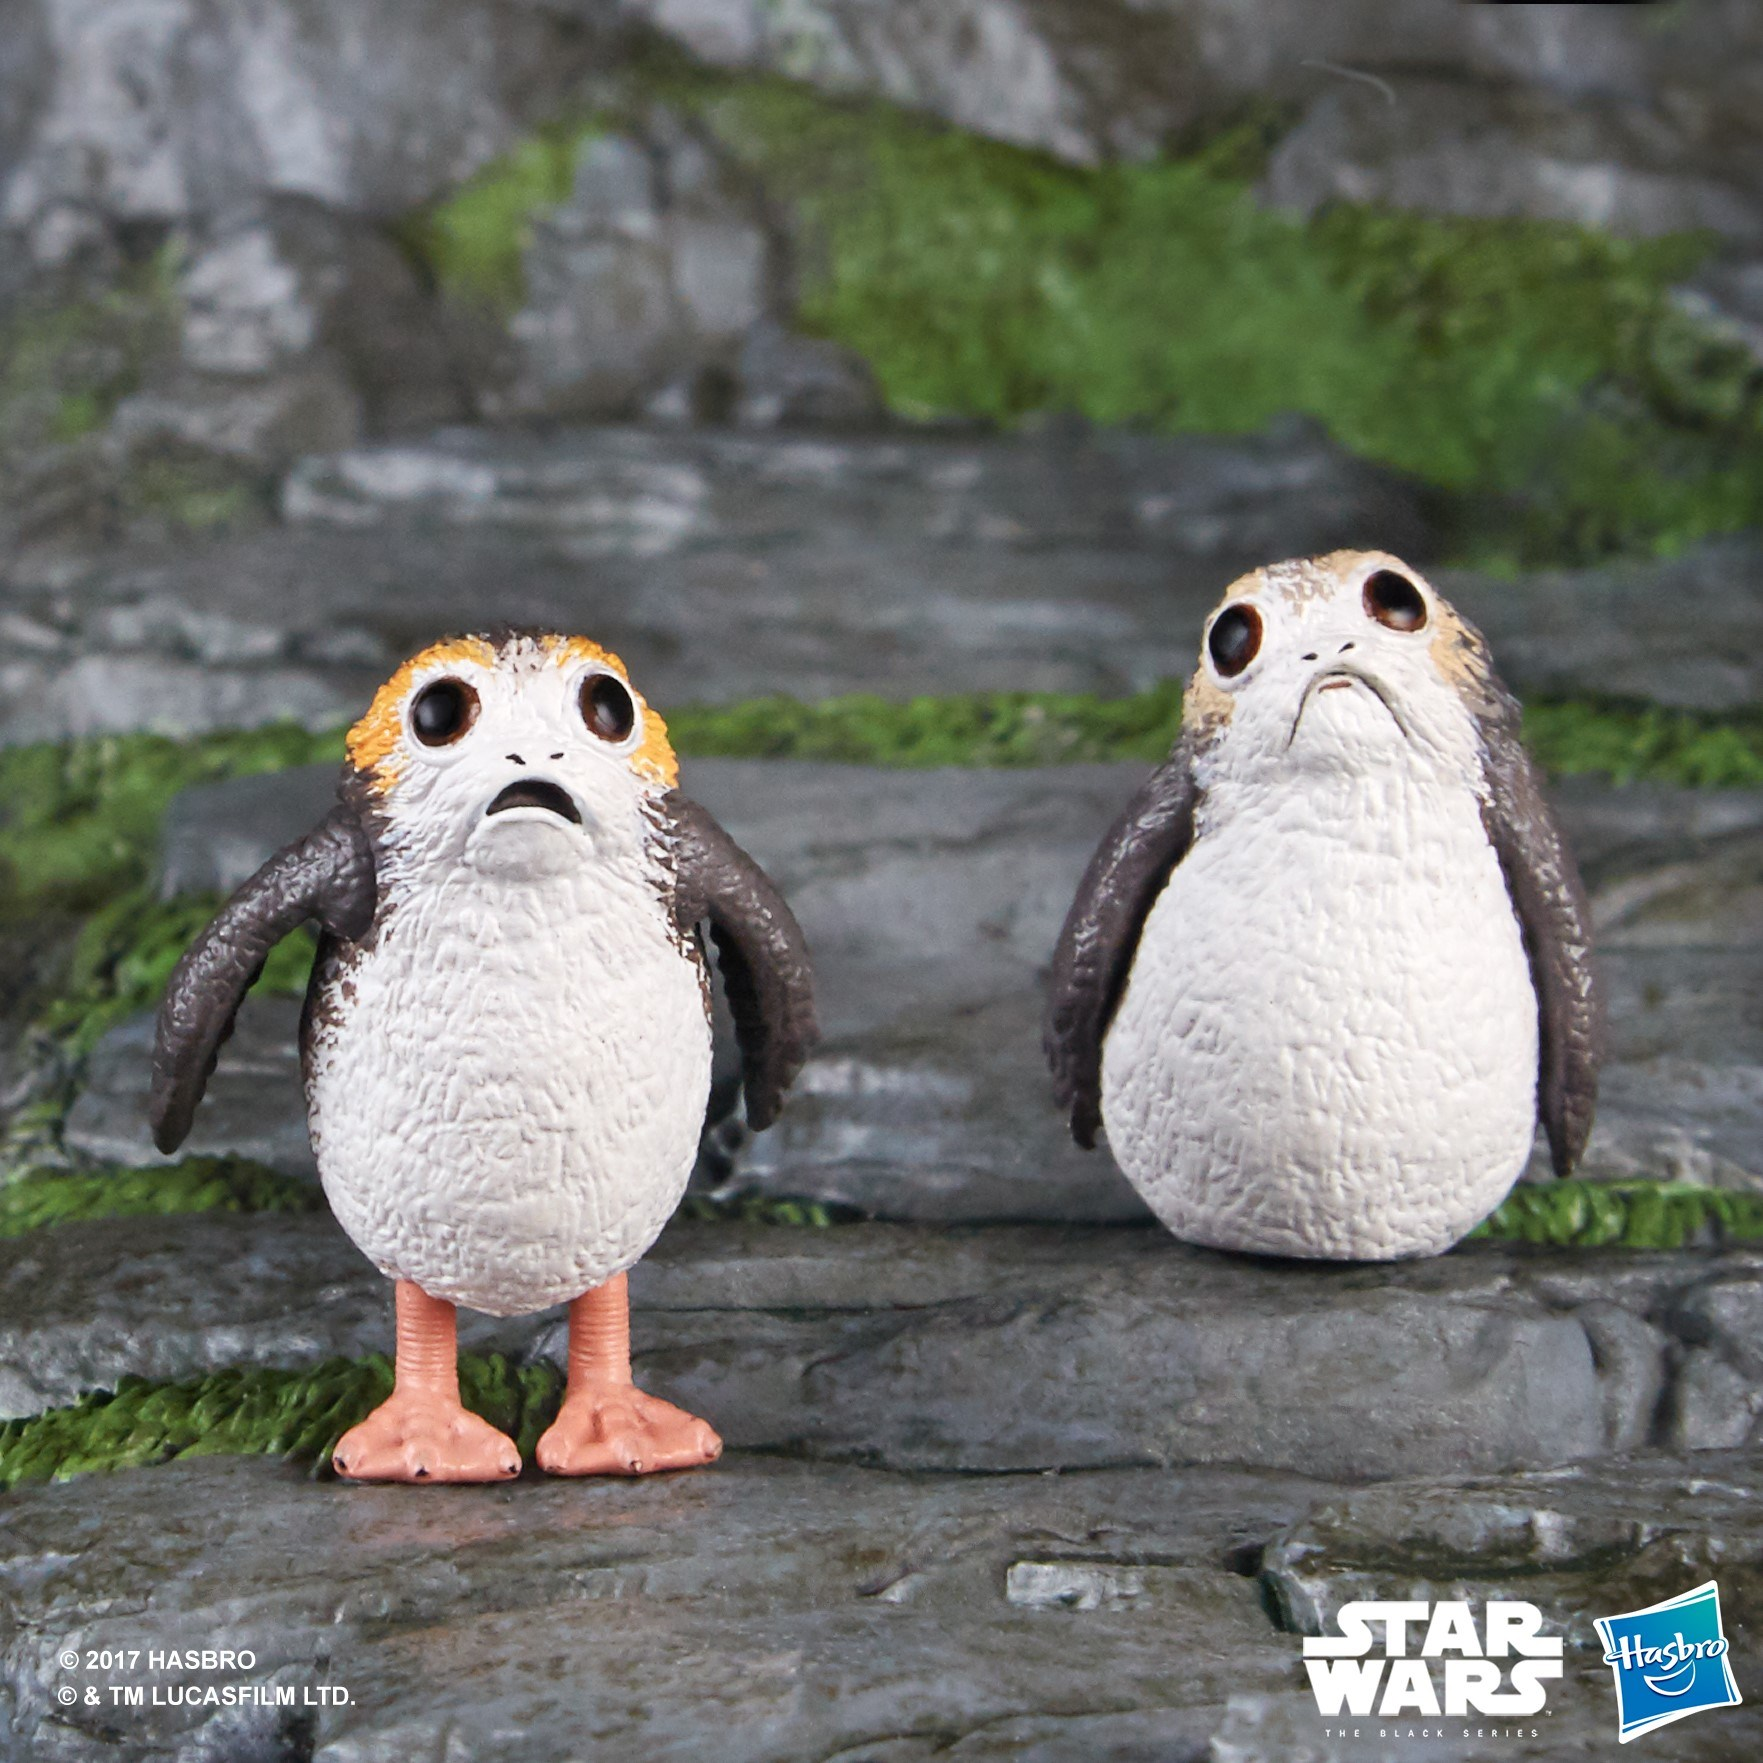 The Black Series Porgs